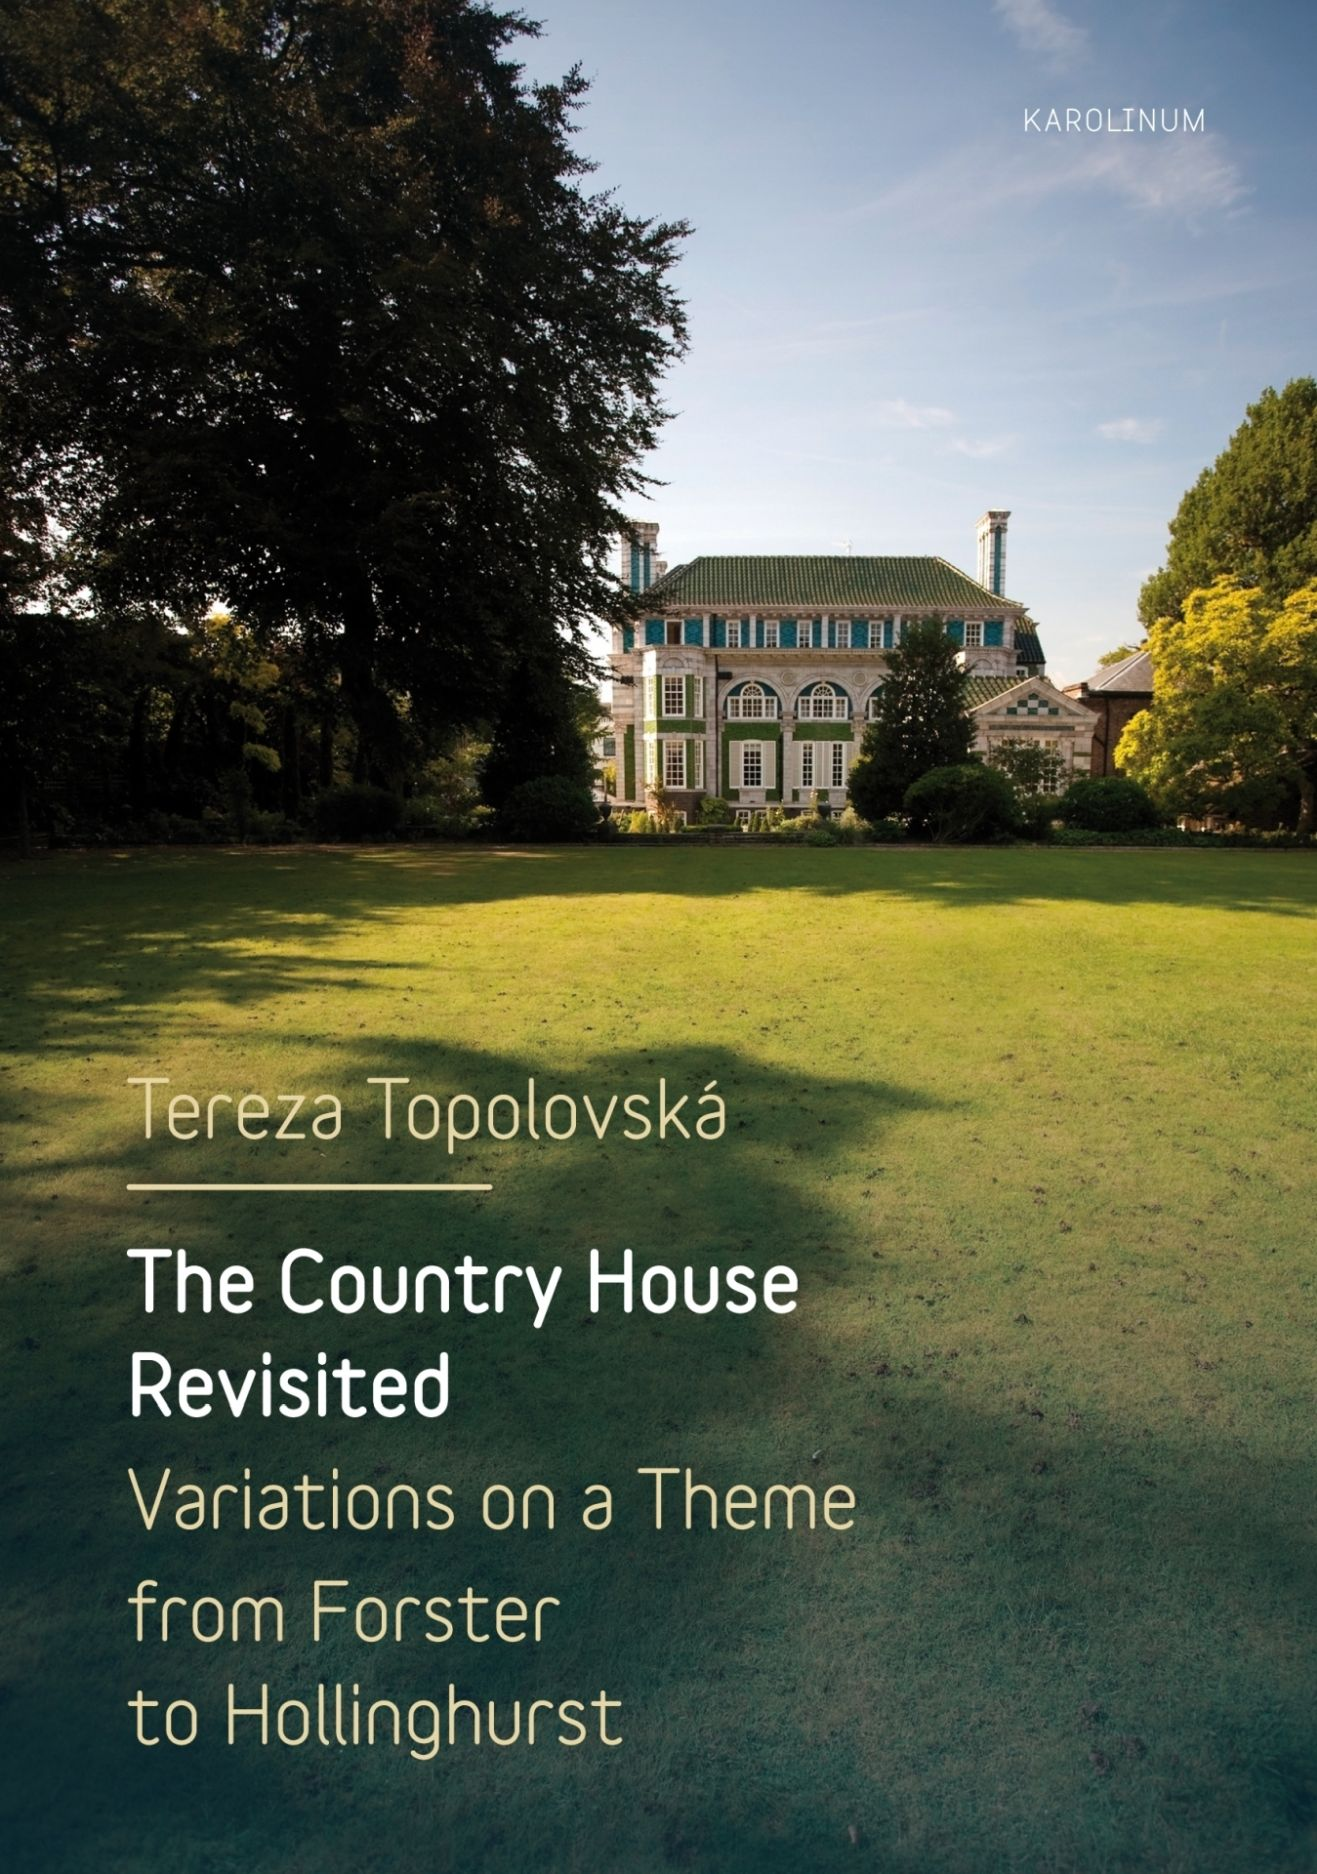 The Country House Revisited